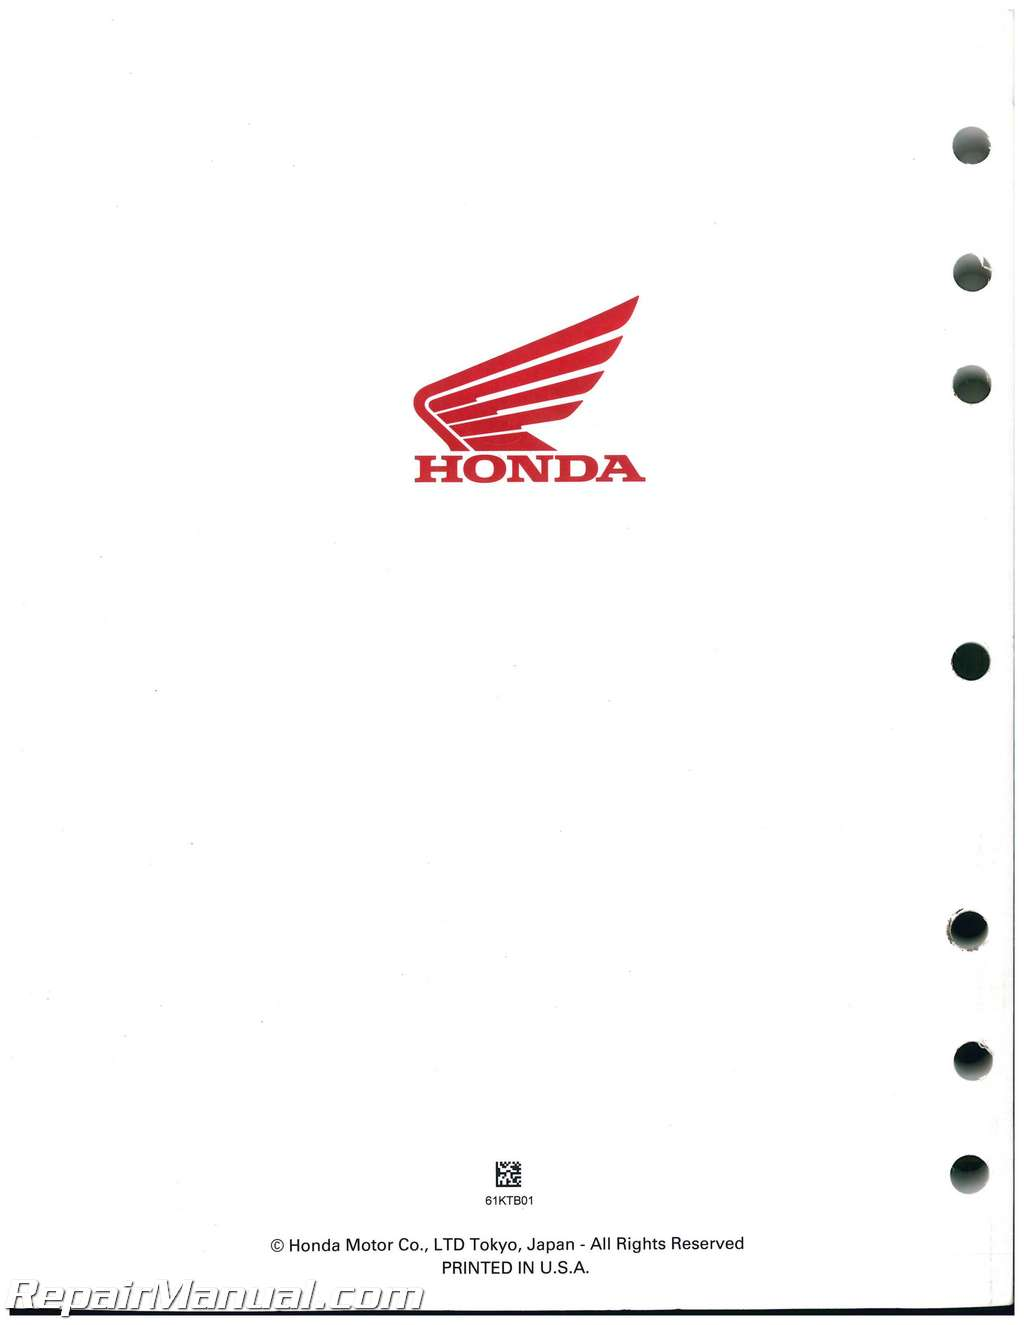 2005-2006 Honda PS250 Big Ruckus Scooter Service Manual